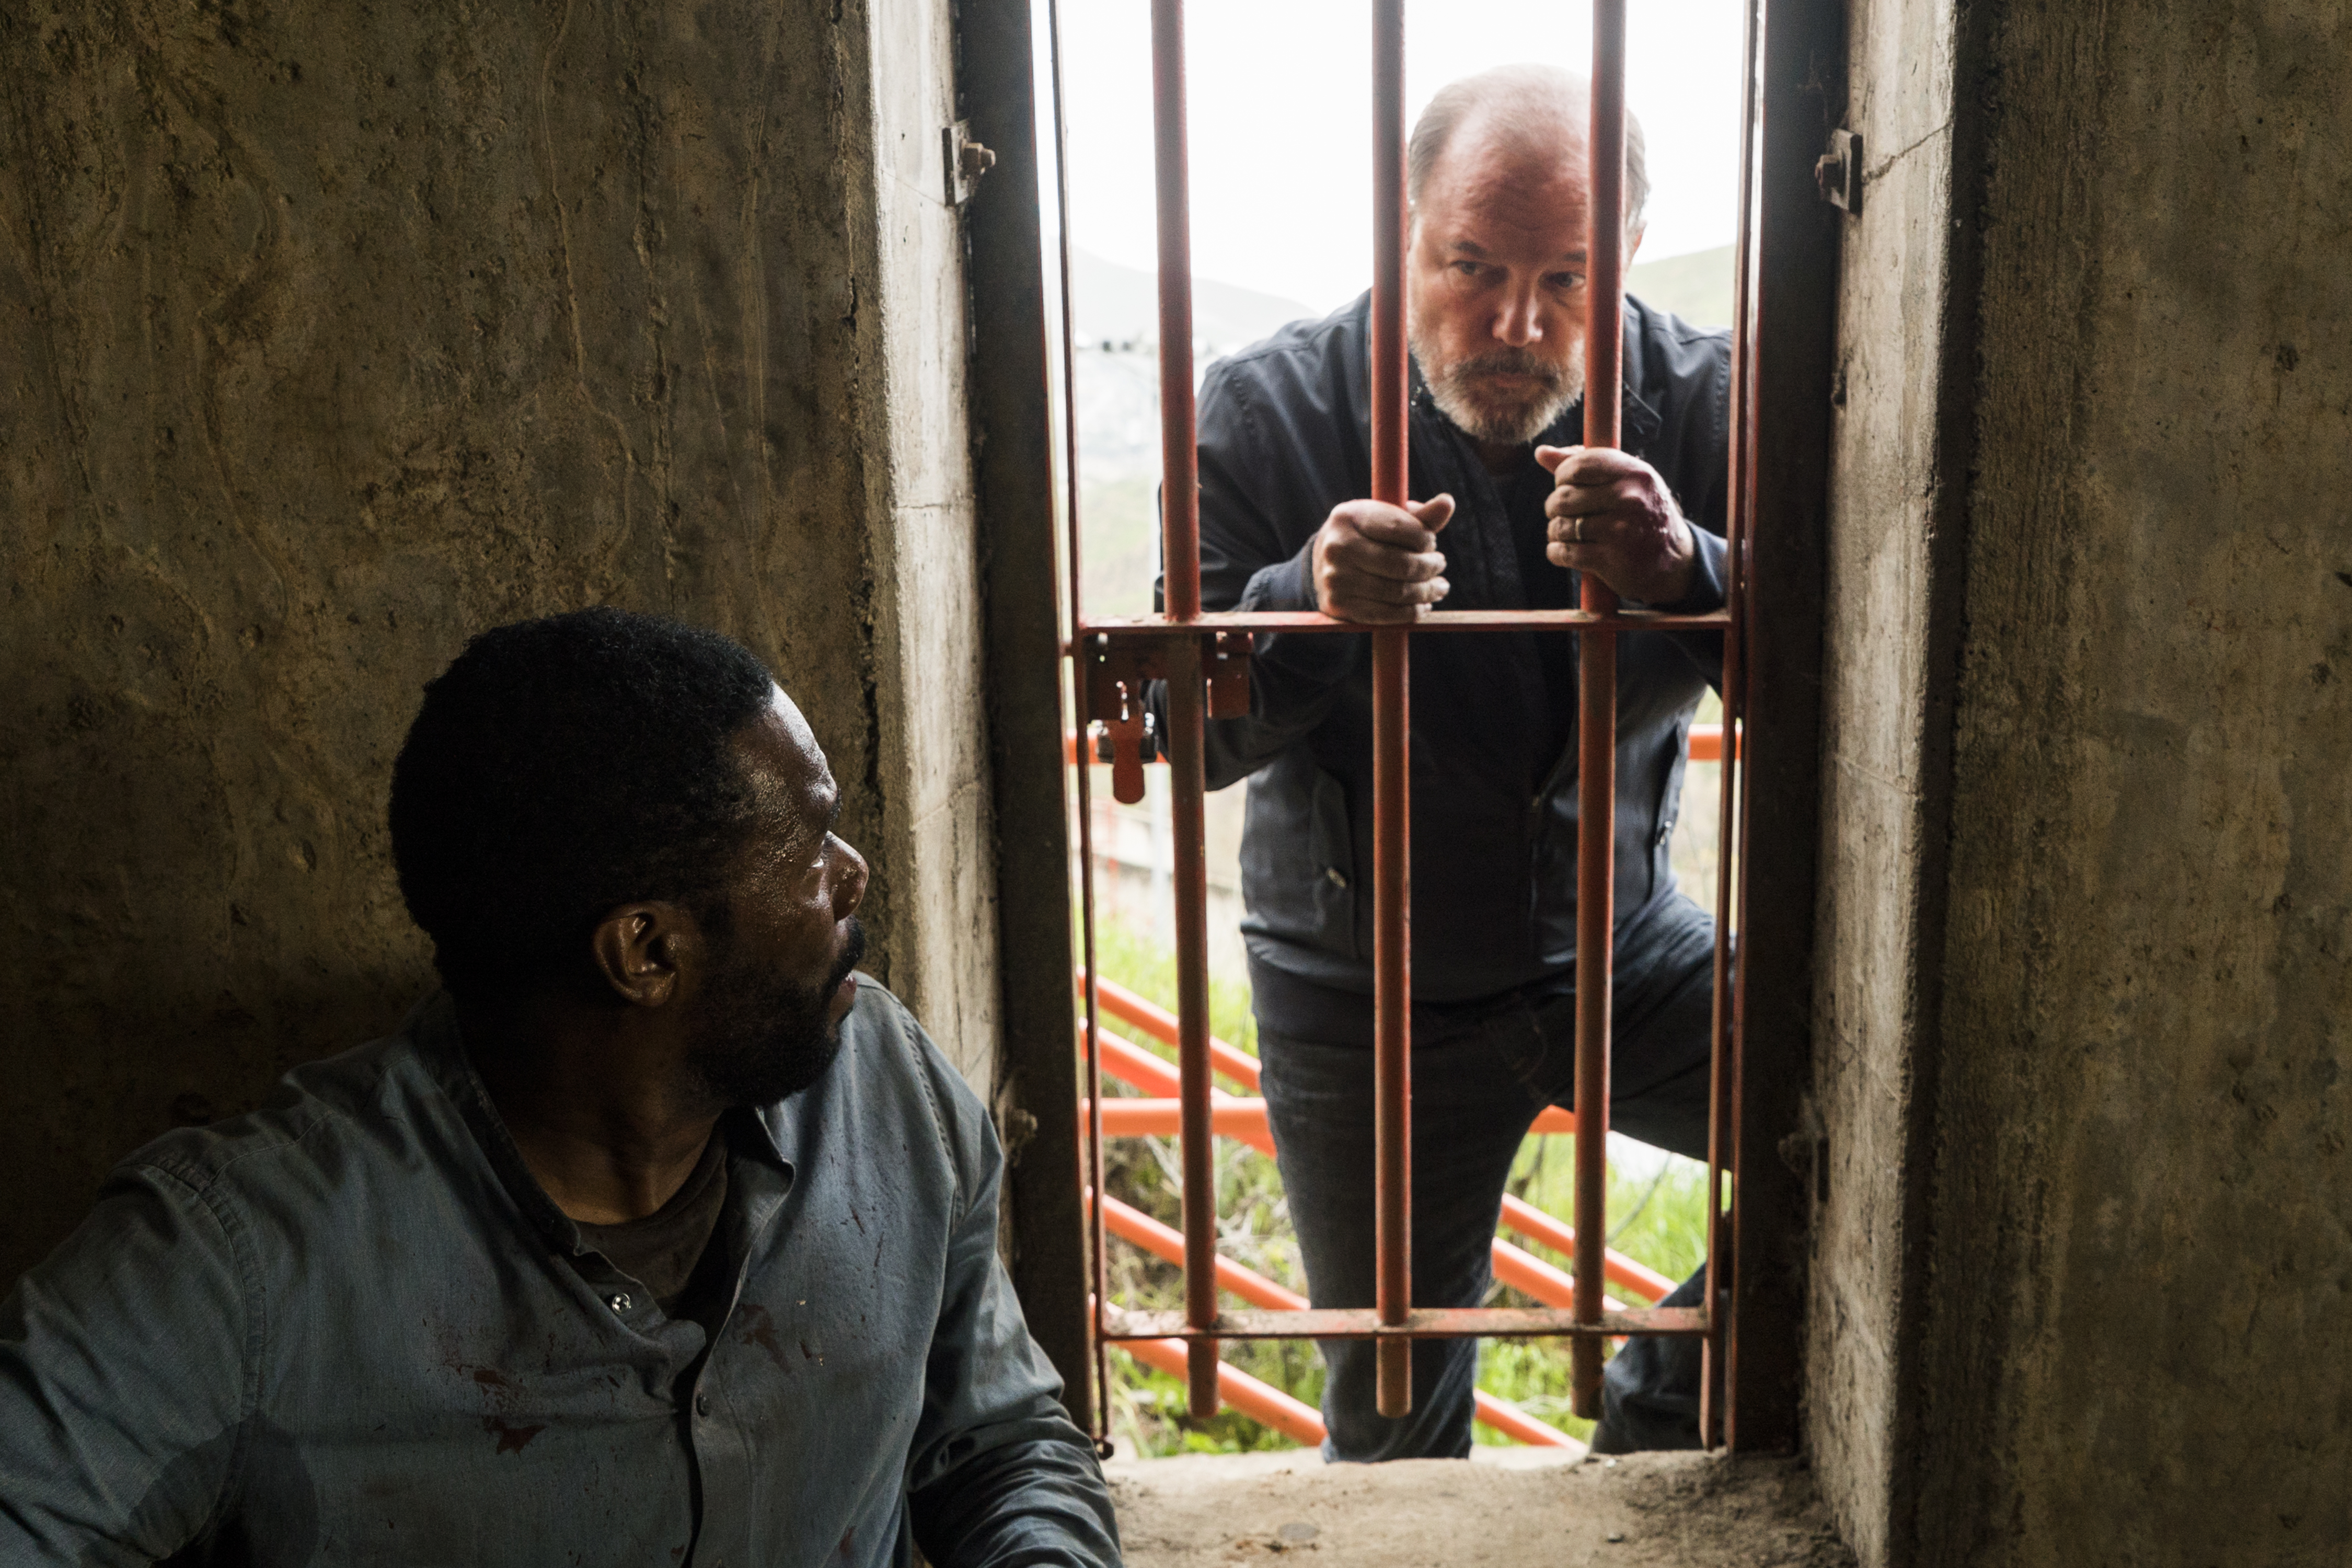 Victor Strand (Colman Domingo), Daniel Salazar (Ruben Blades) - Fear the Walking Dead Saison 3 Épisode 3 - Photo: Richard Foreman Jr/AMC